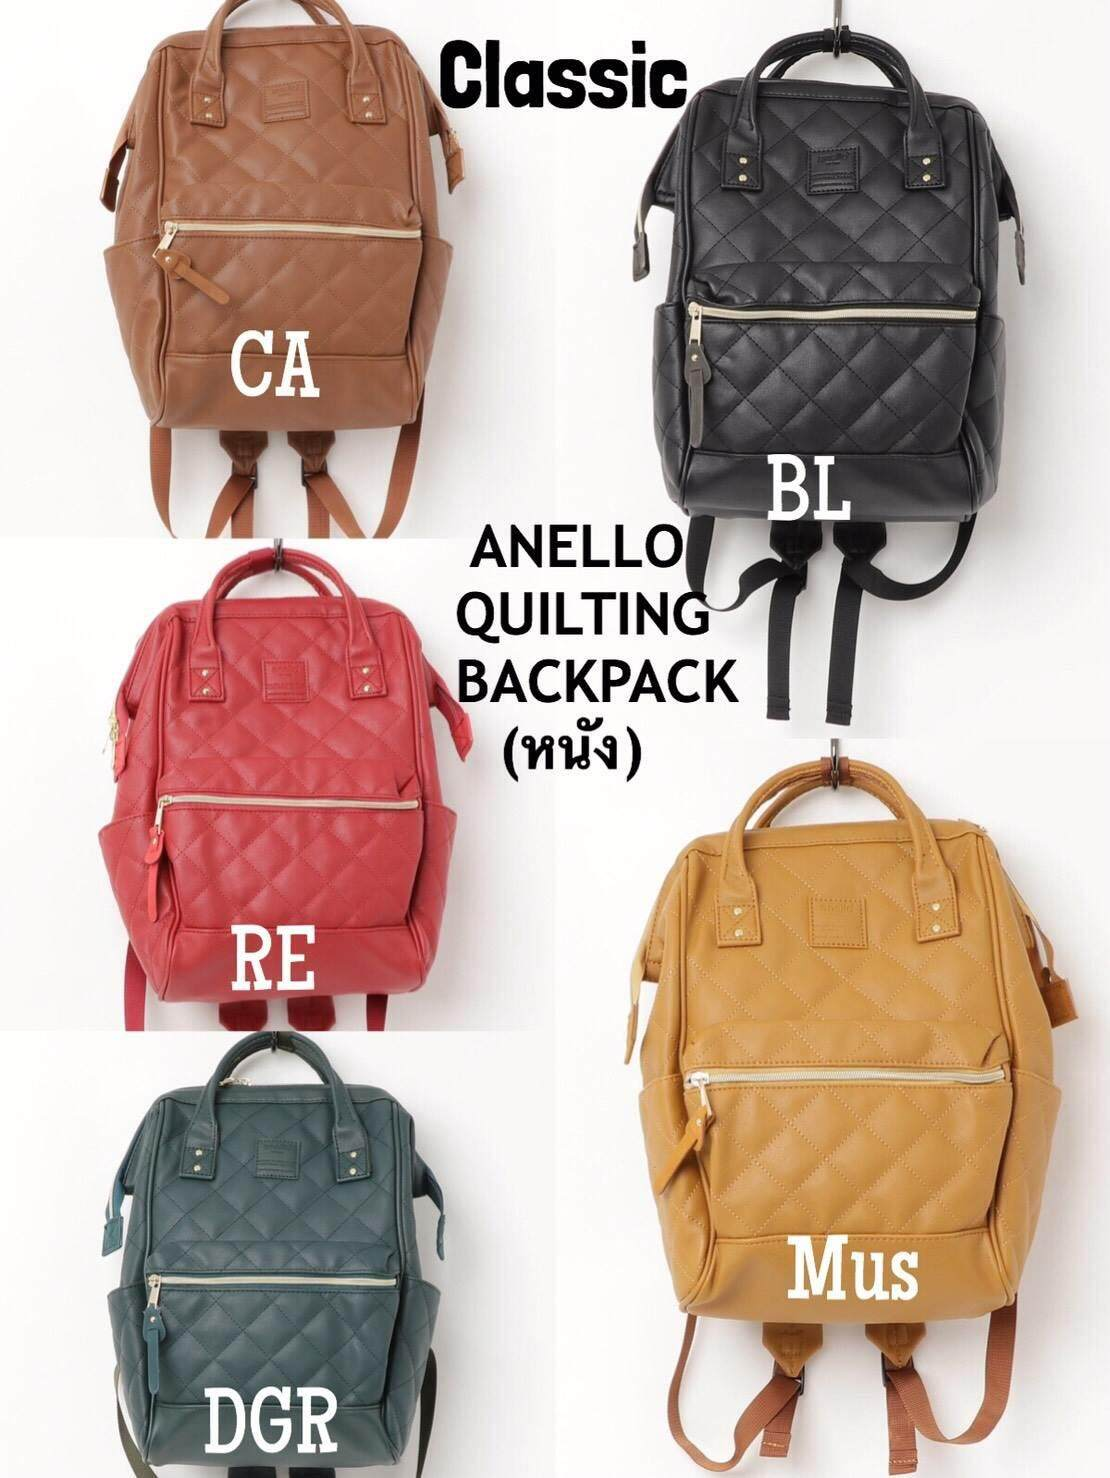 ANELLO QUILTING BACKPACK